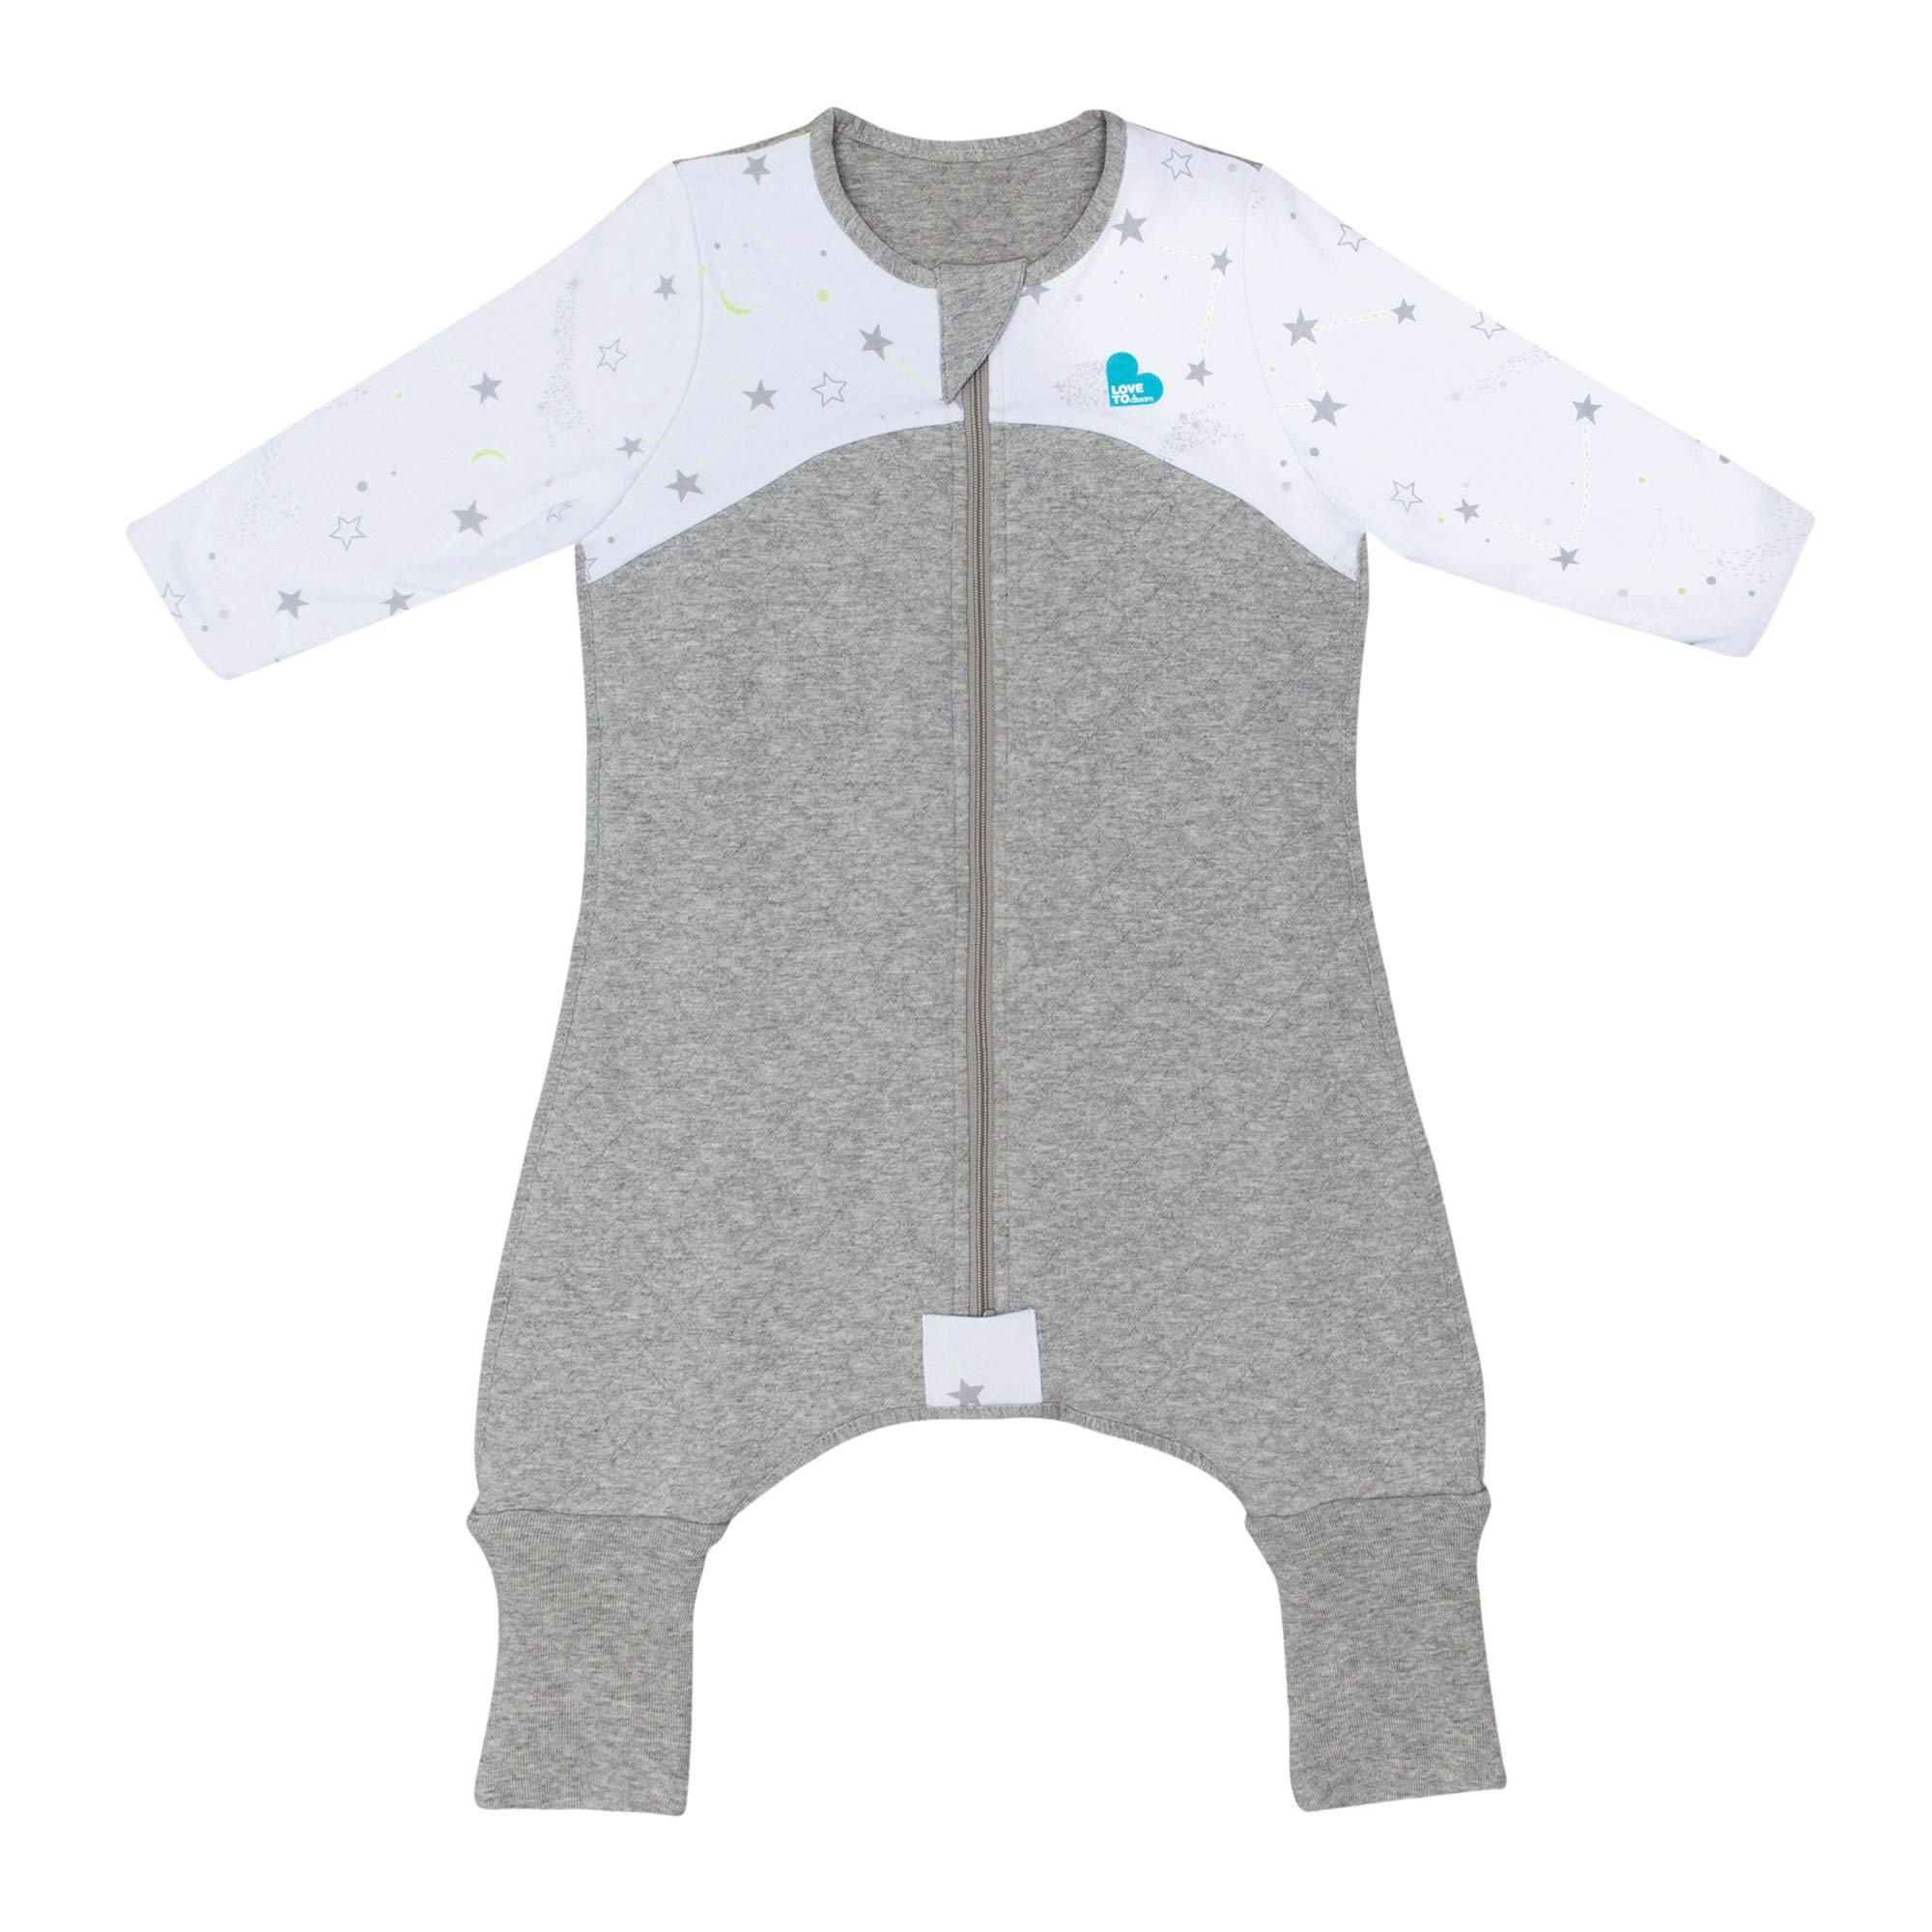 Love To Dream Sleep Suit, 2.5 TOG, White, 12-24 Months, Premium All-in-one Quilted Wearable Blanket That can't be Kicked Off, Legs with 2-in-1 feet Perfect for Sleep & Play, Ideal for Active Toddlers by Love to Dream